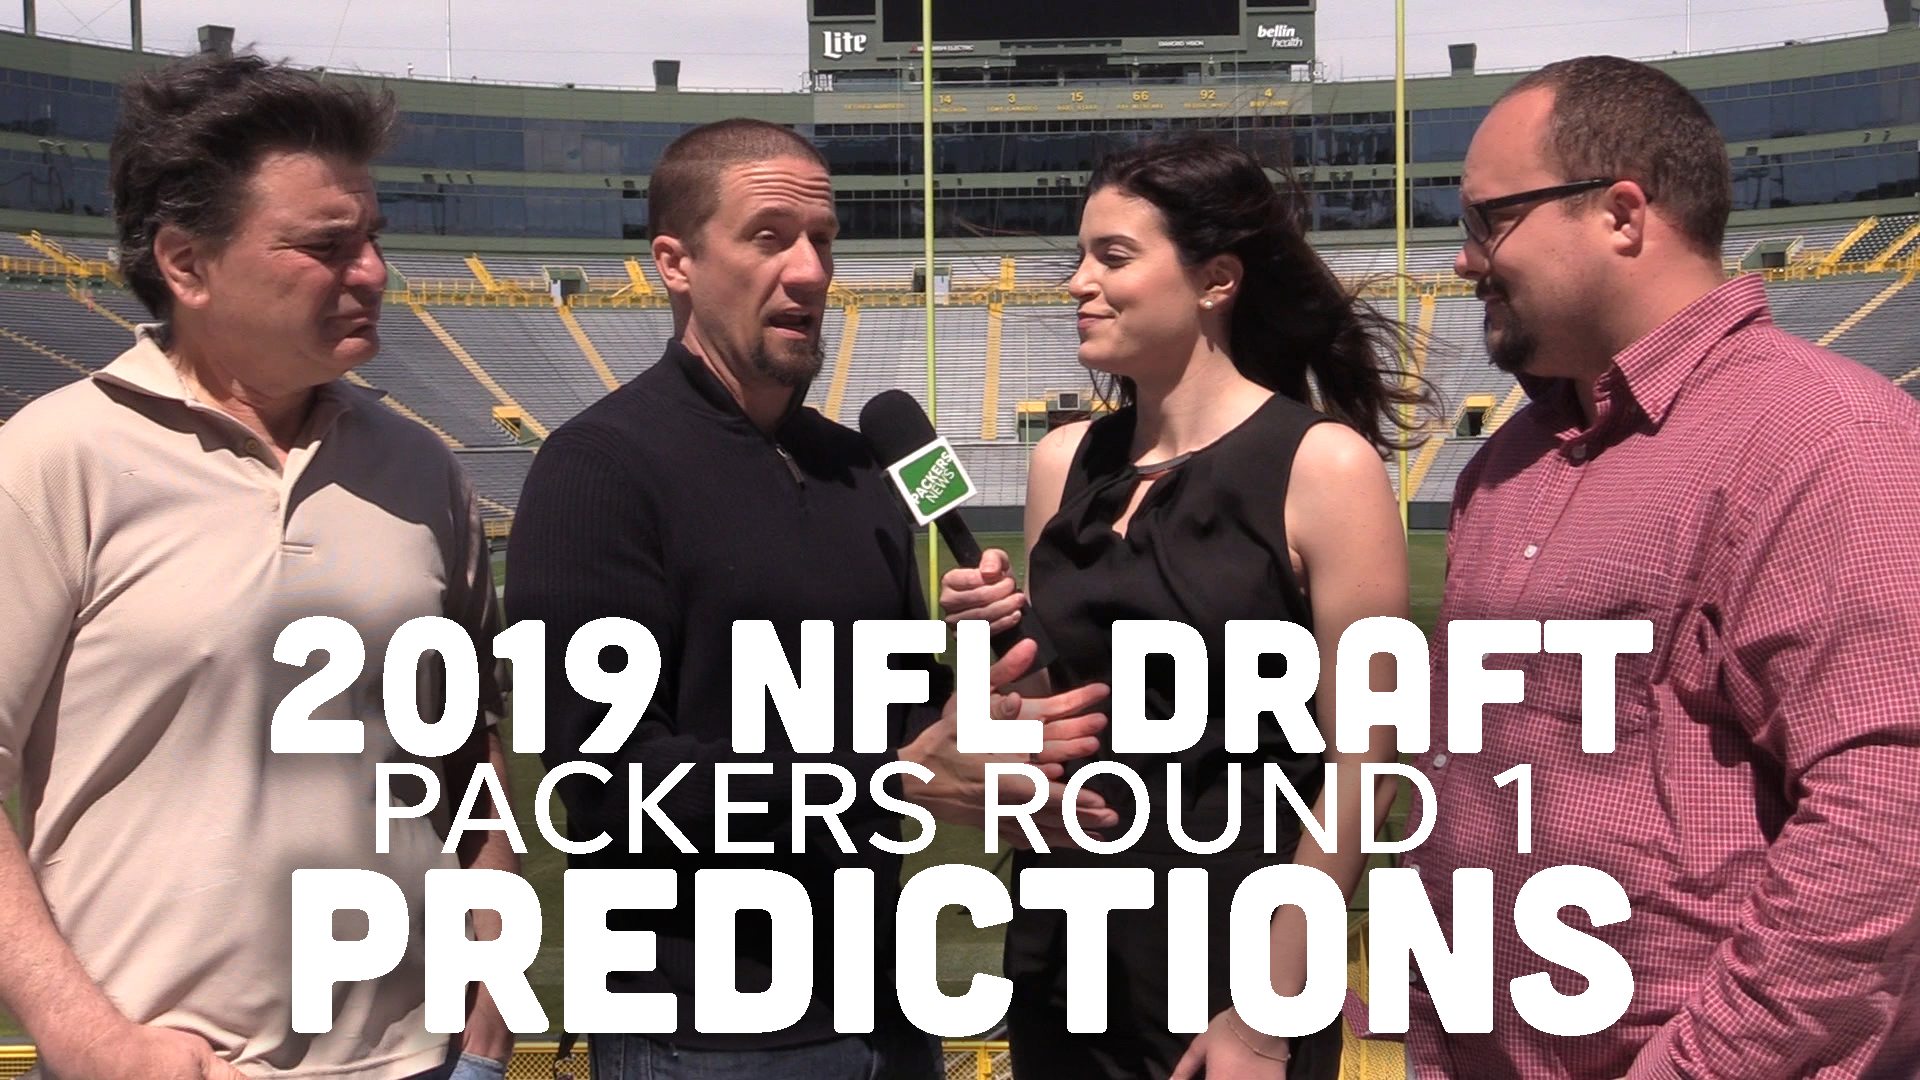 2019 NFL Draft: Round 1 Predictions